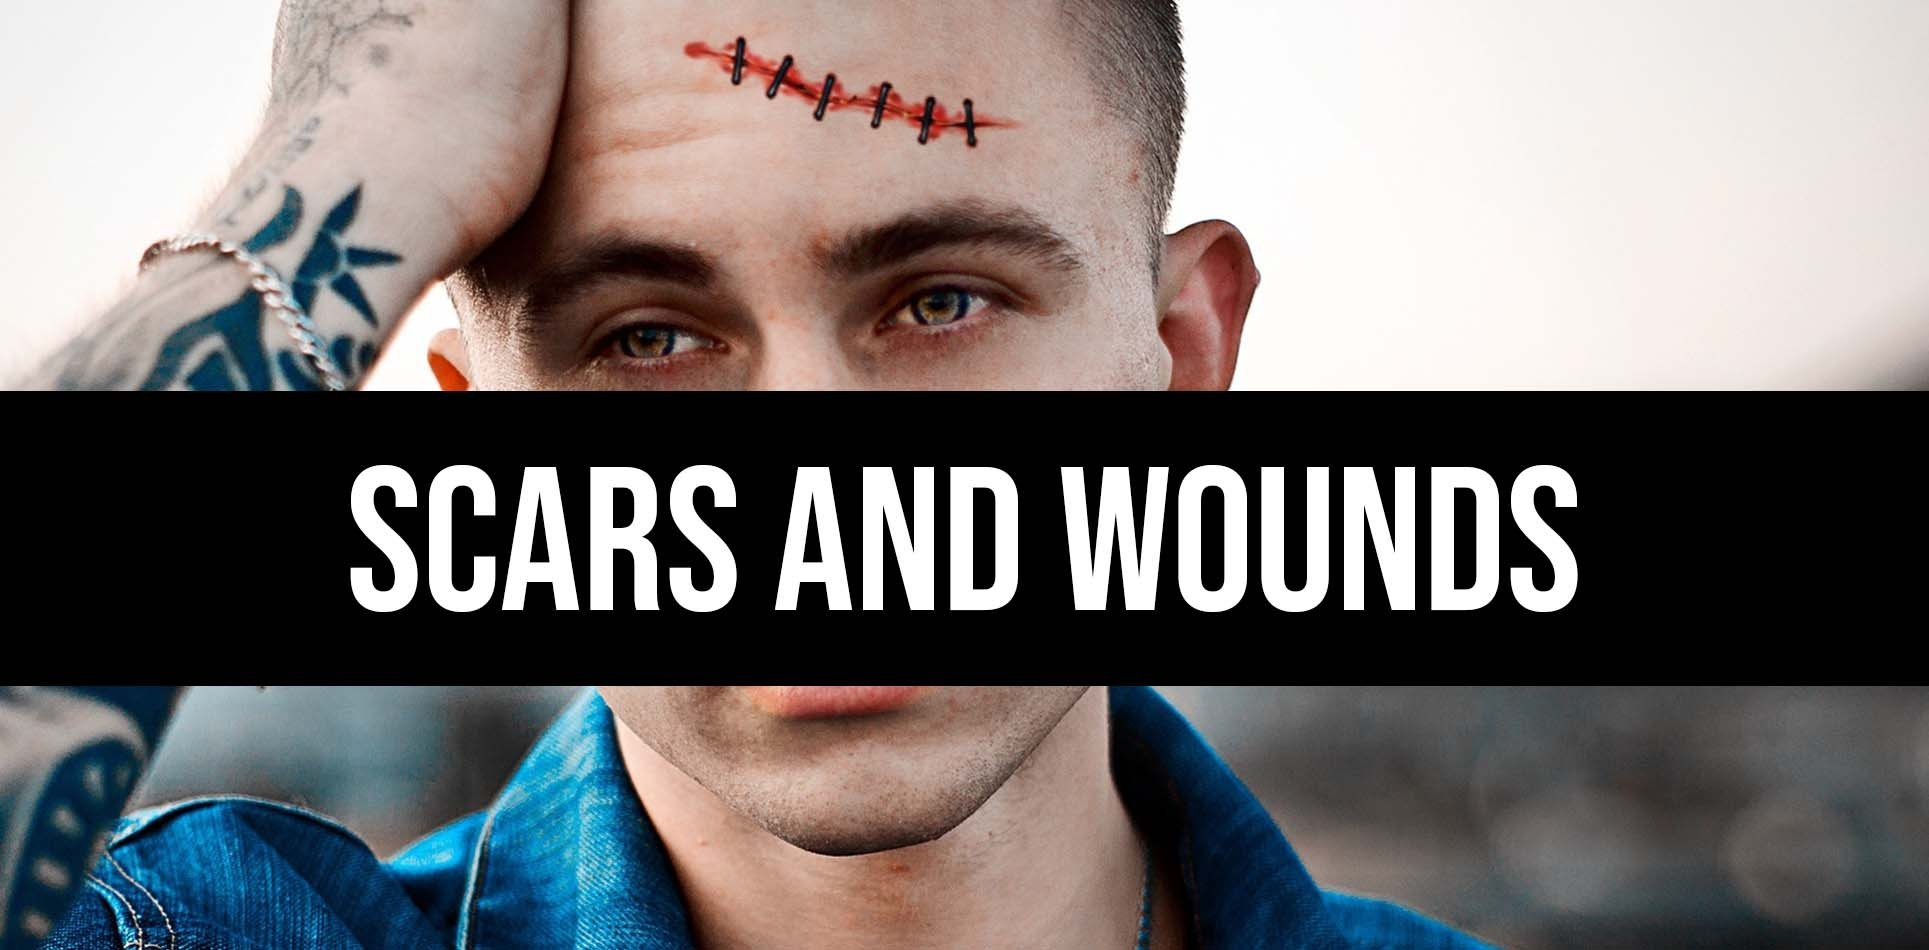 Scars and Wounds Tattoos